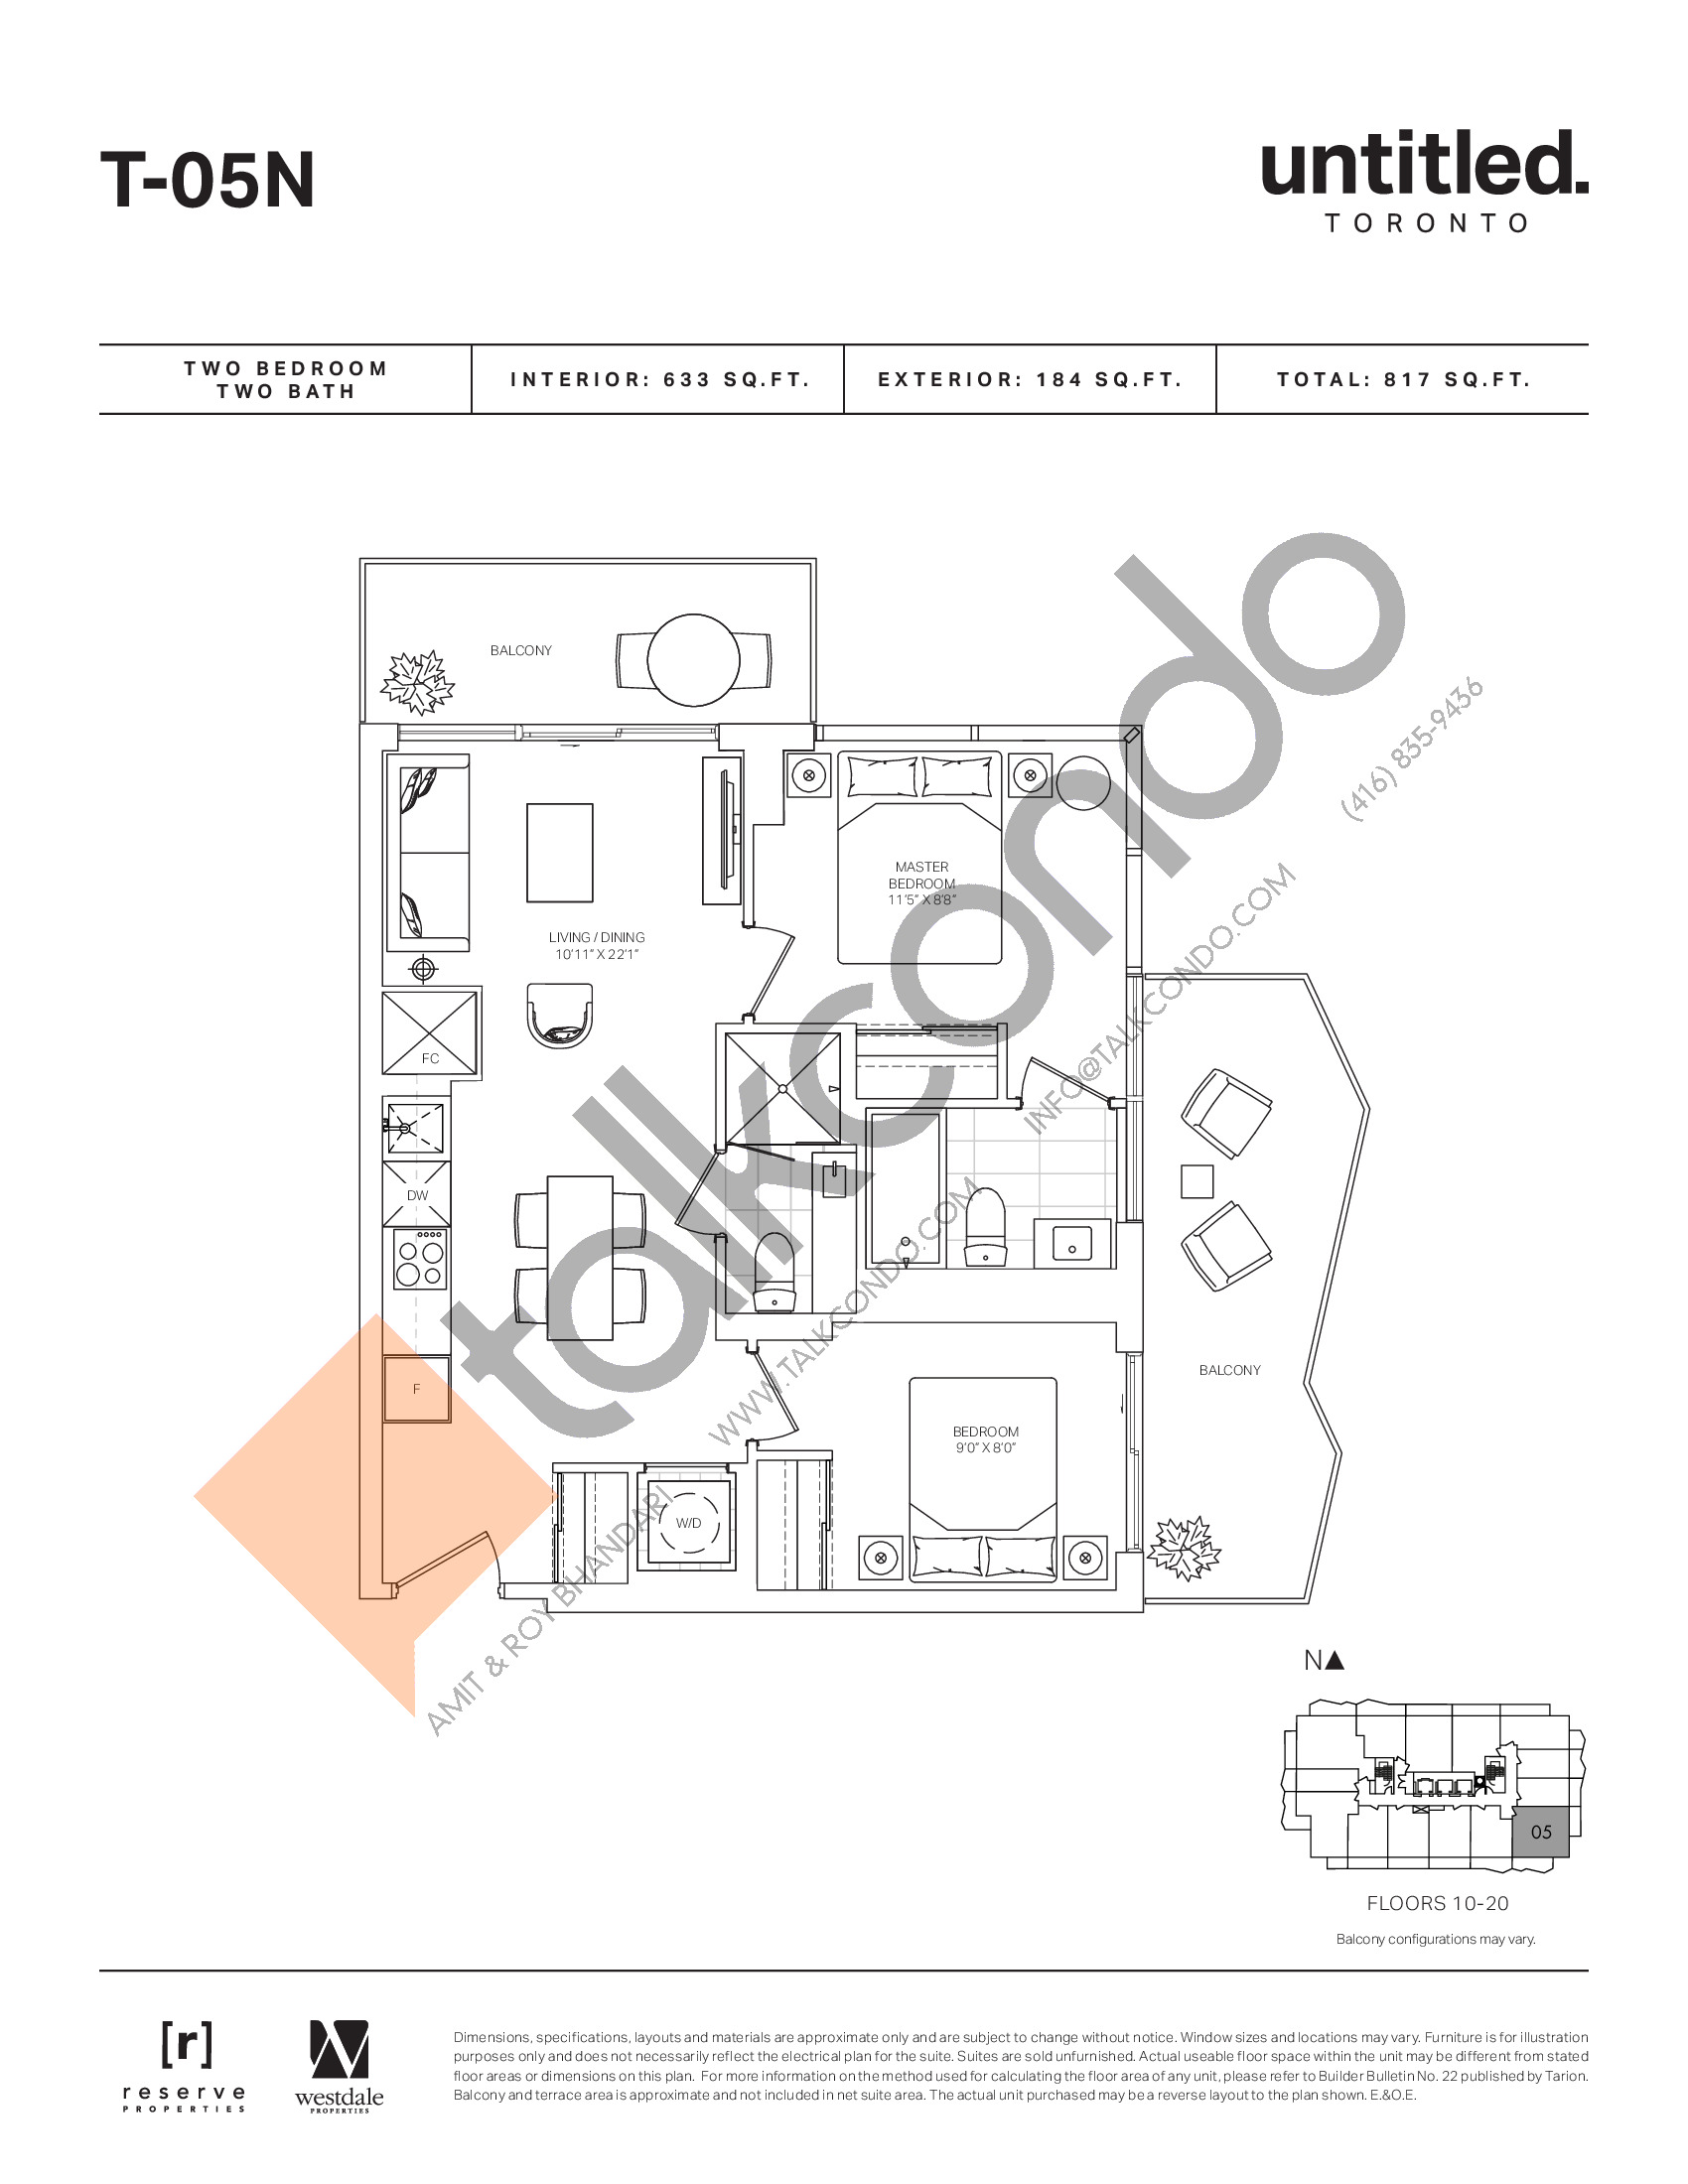 T-05N Floor Plan at Untitled North Tower Condos - 633 sq.ft